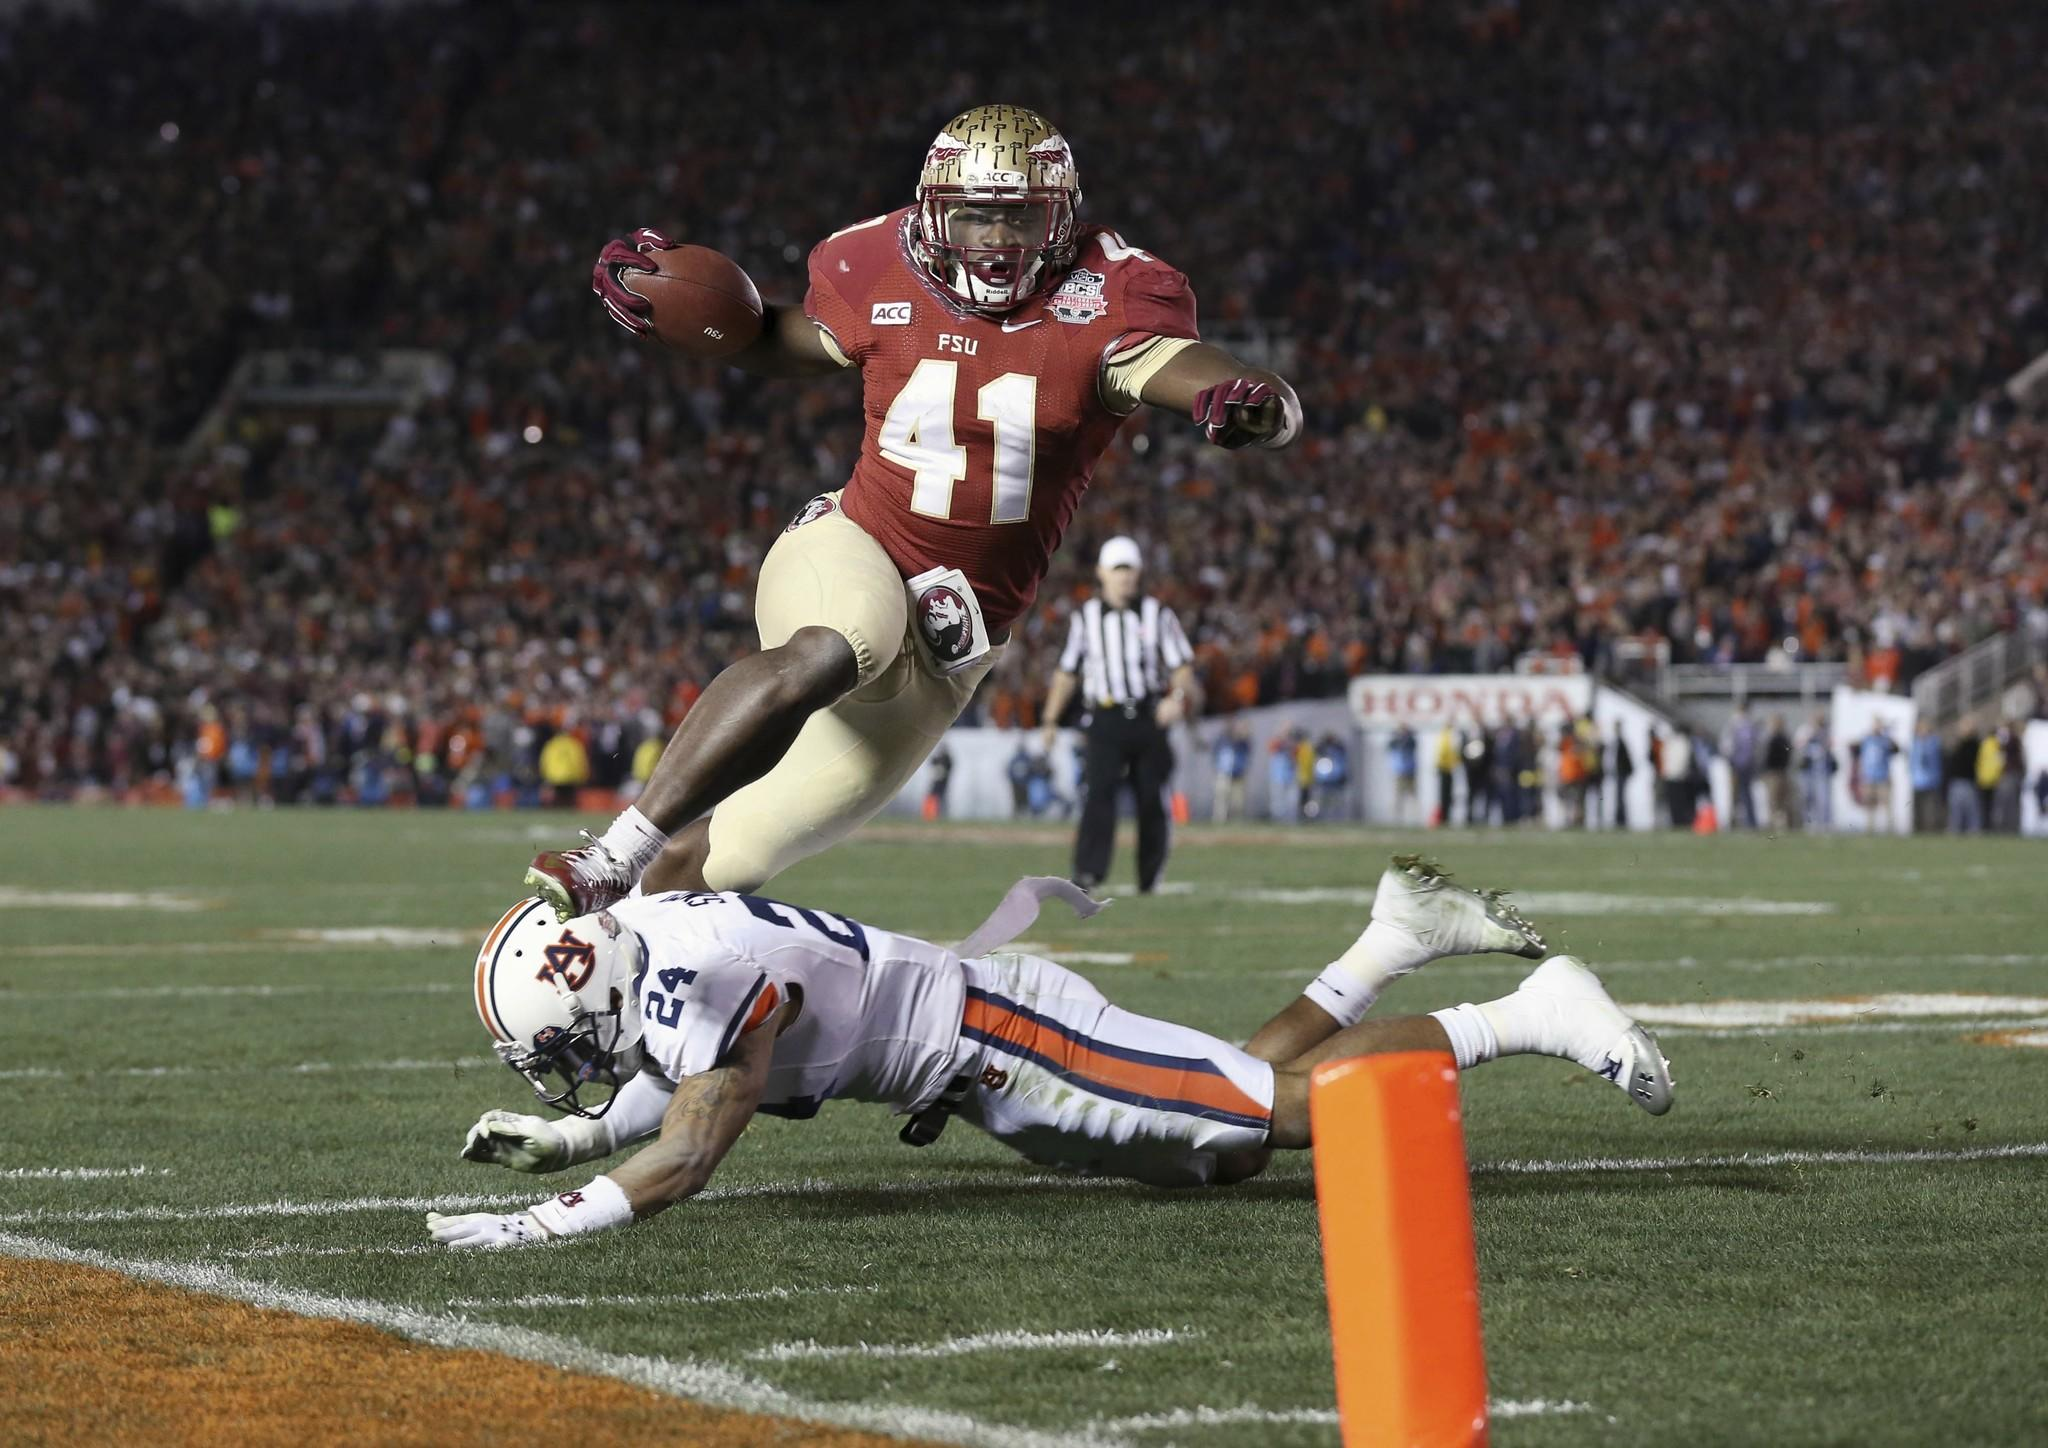 Florida State fullback Chad Abram scores a touchdown during the BCS National Championship game at the Rose Bowl.